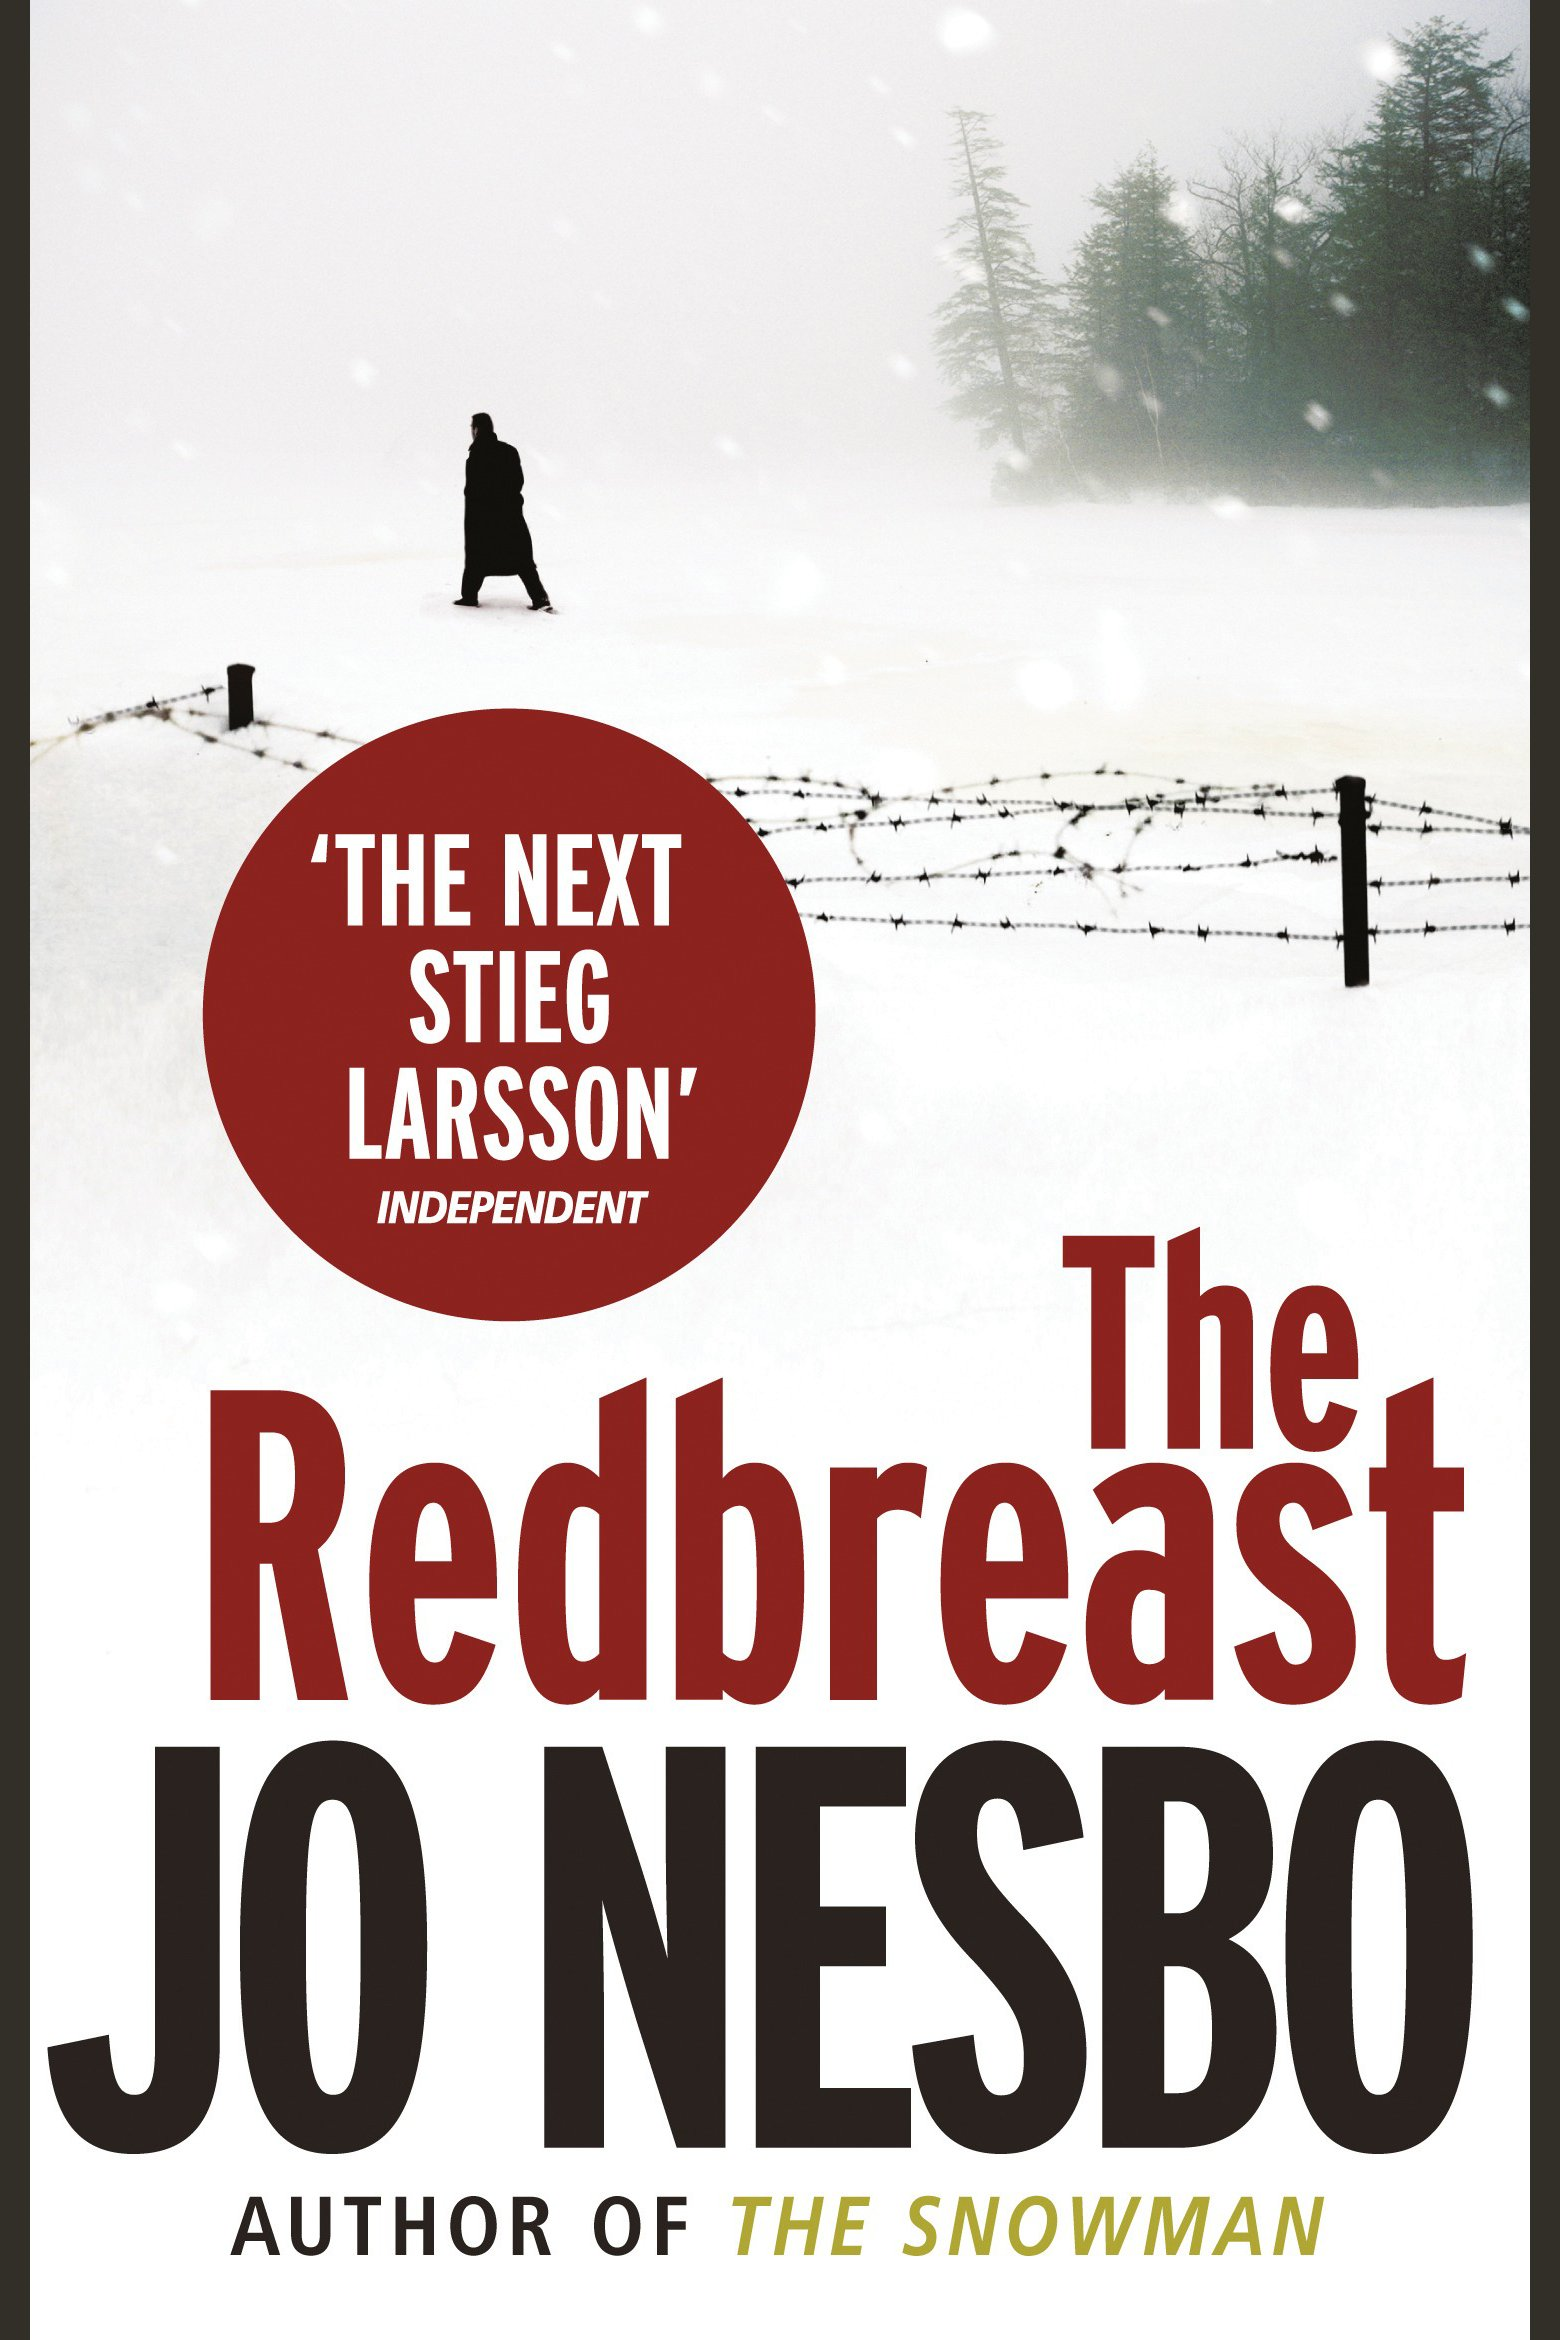 The redbreast a Harry Hole novel cover image